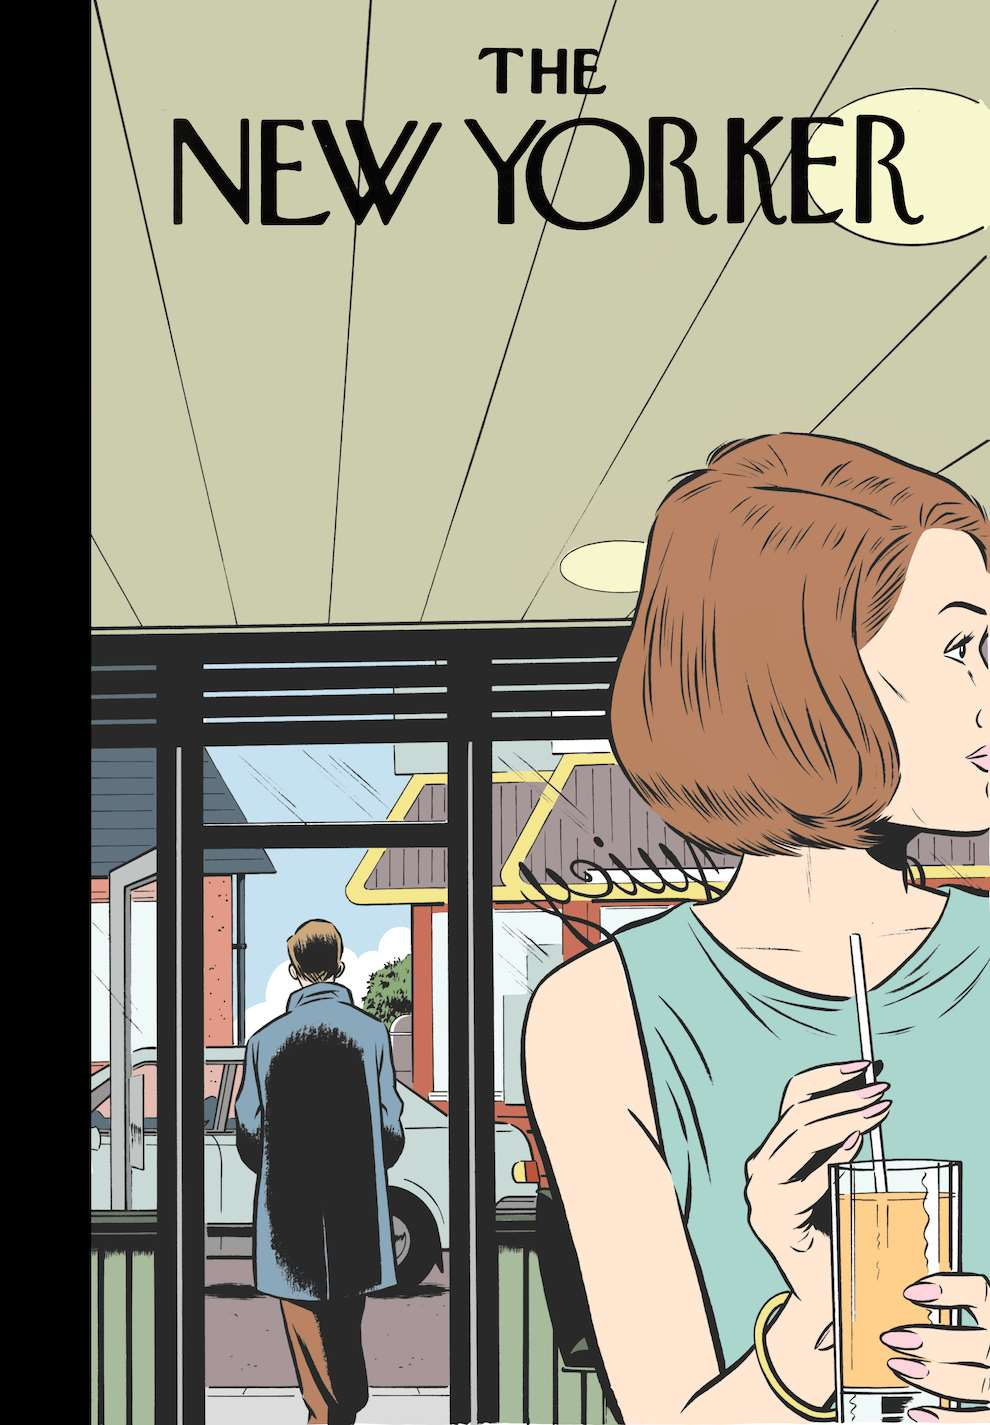 Mark Thomas, Speculative New York Time cover retro style digital illustration of a woman drinking juice in a cafe